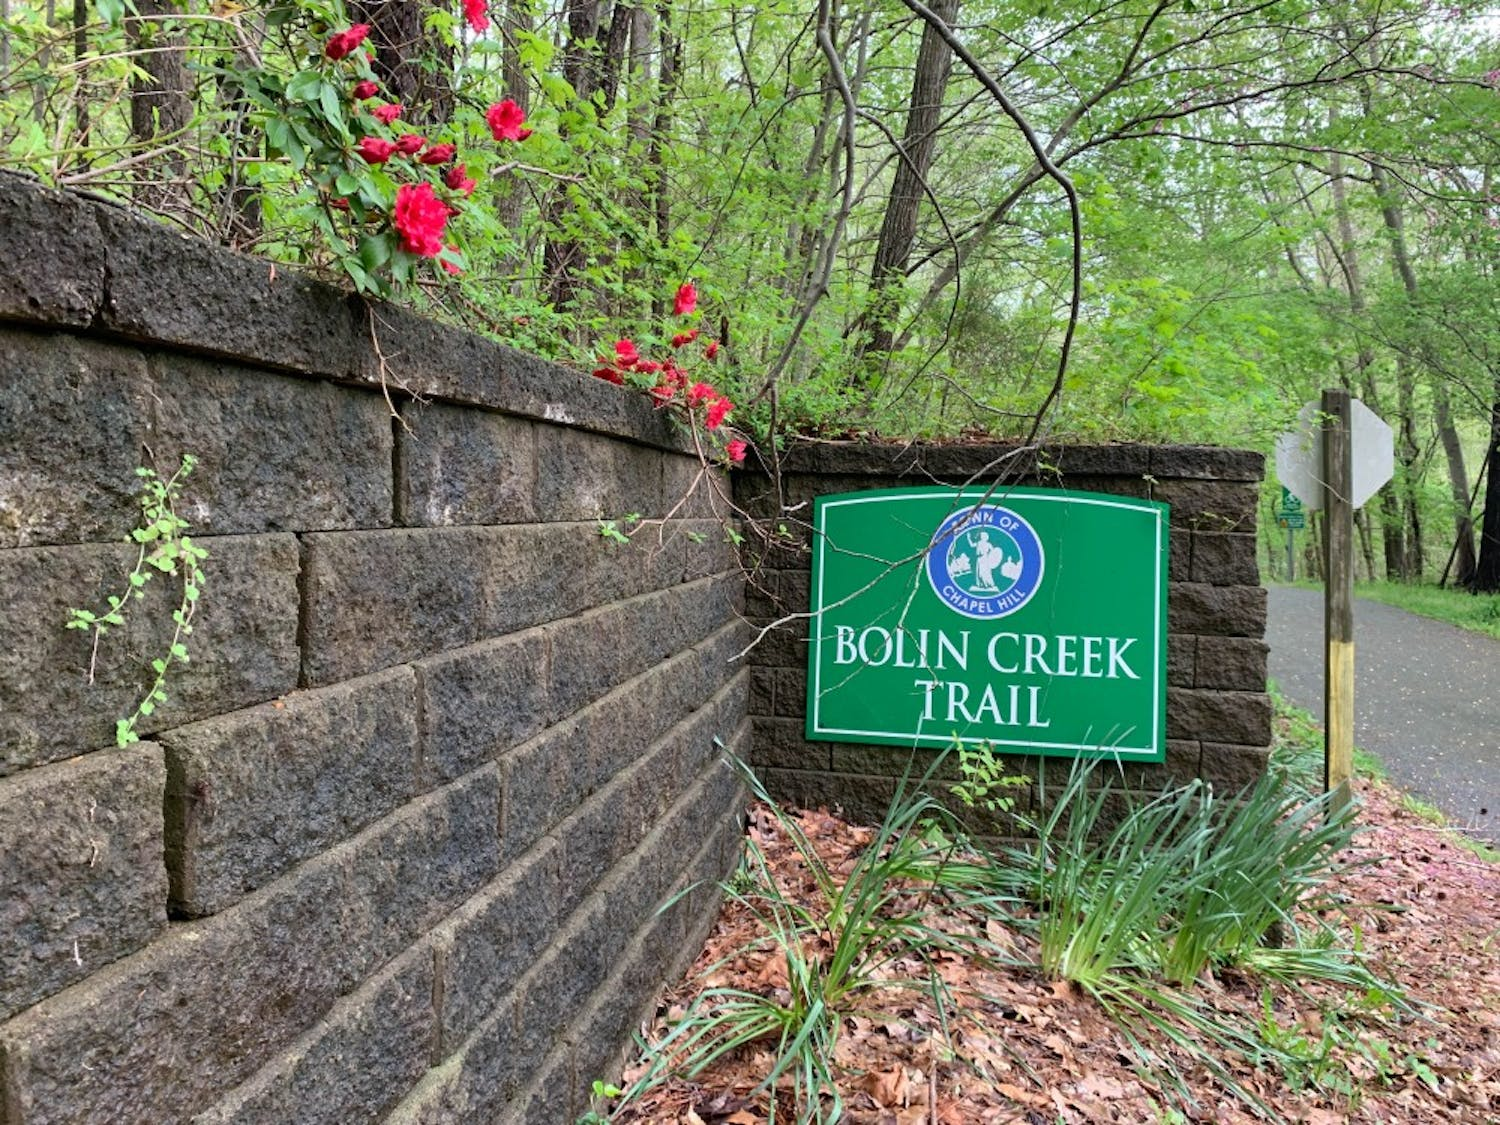 The Bolin Creek Trail is a paved trail that runs through forests and under bridges in the Chapel Hill Community.